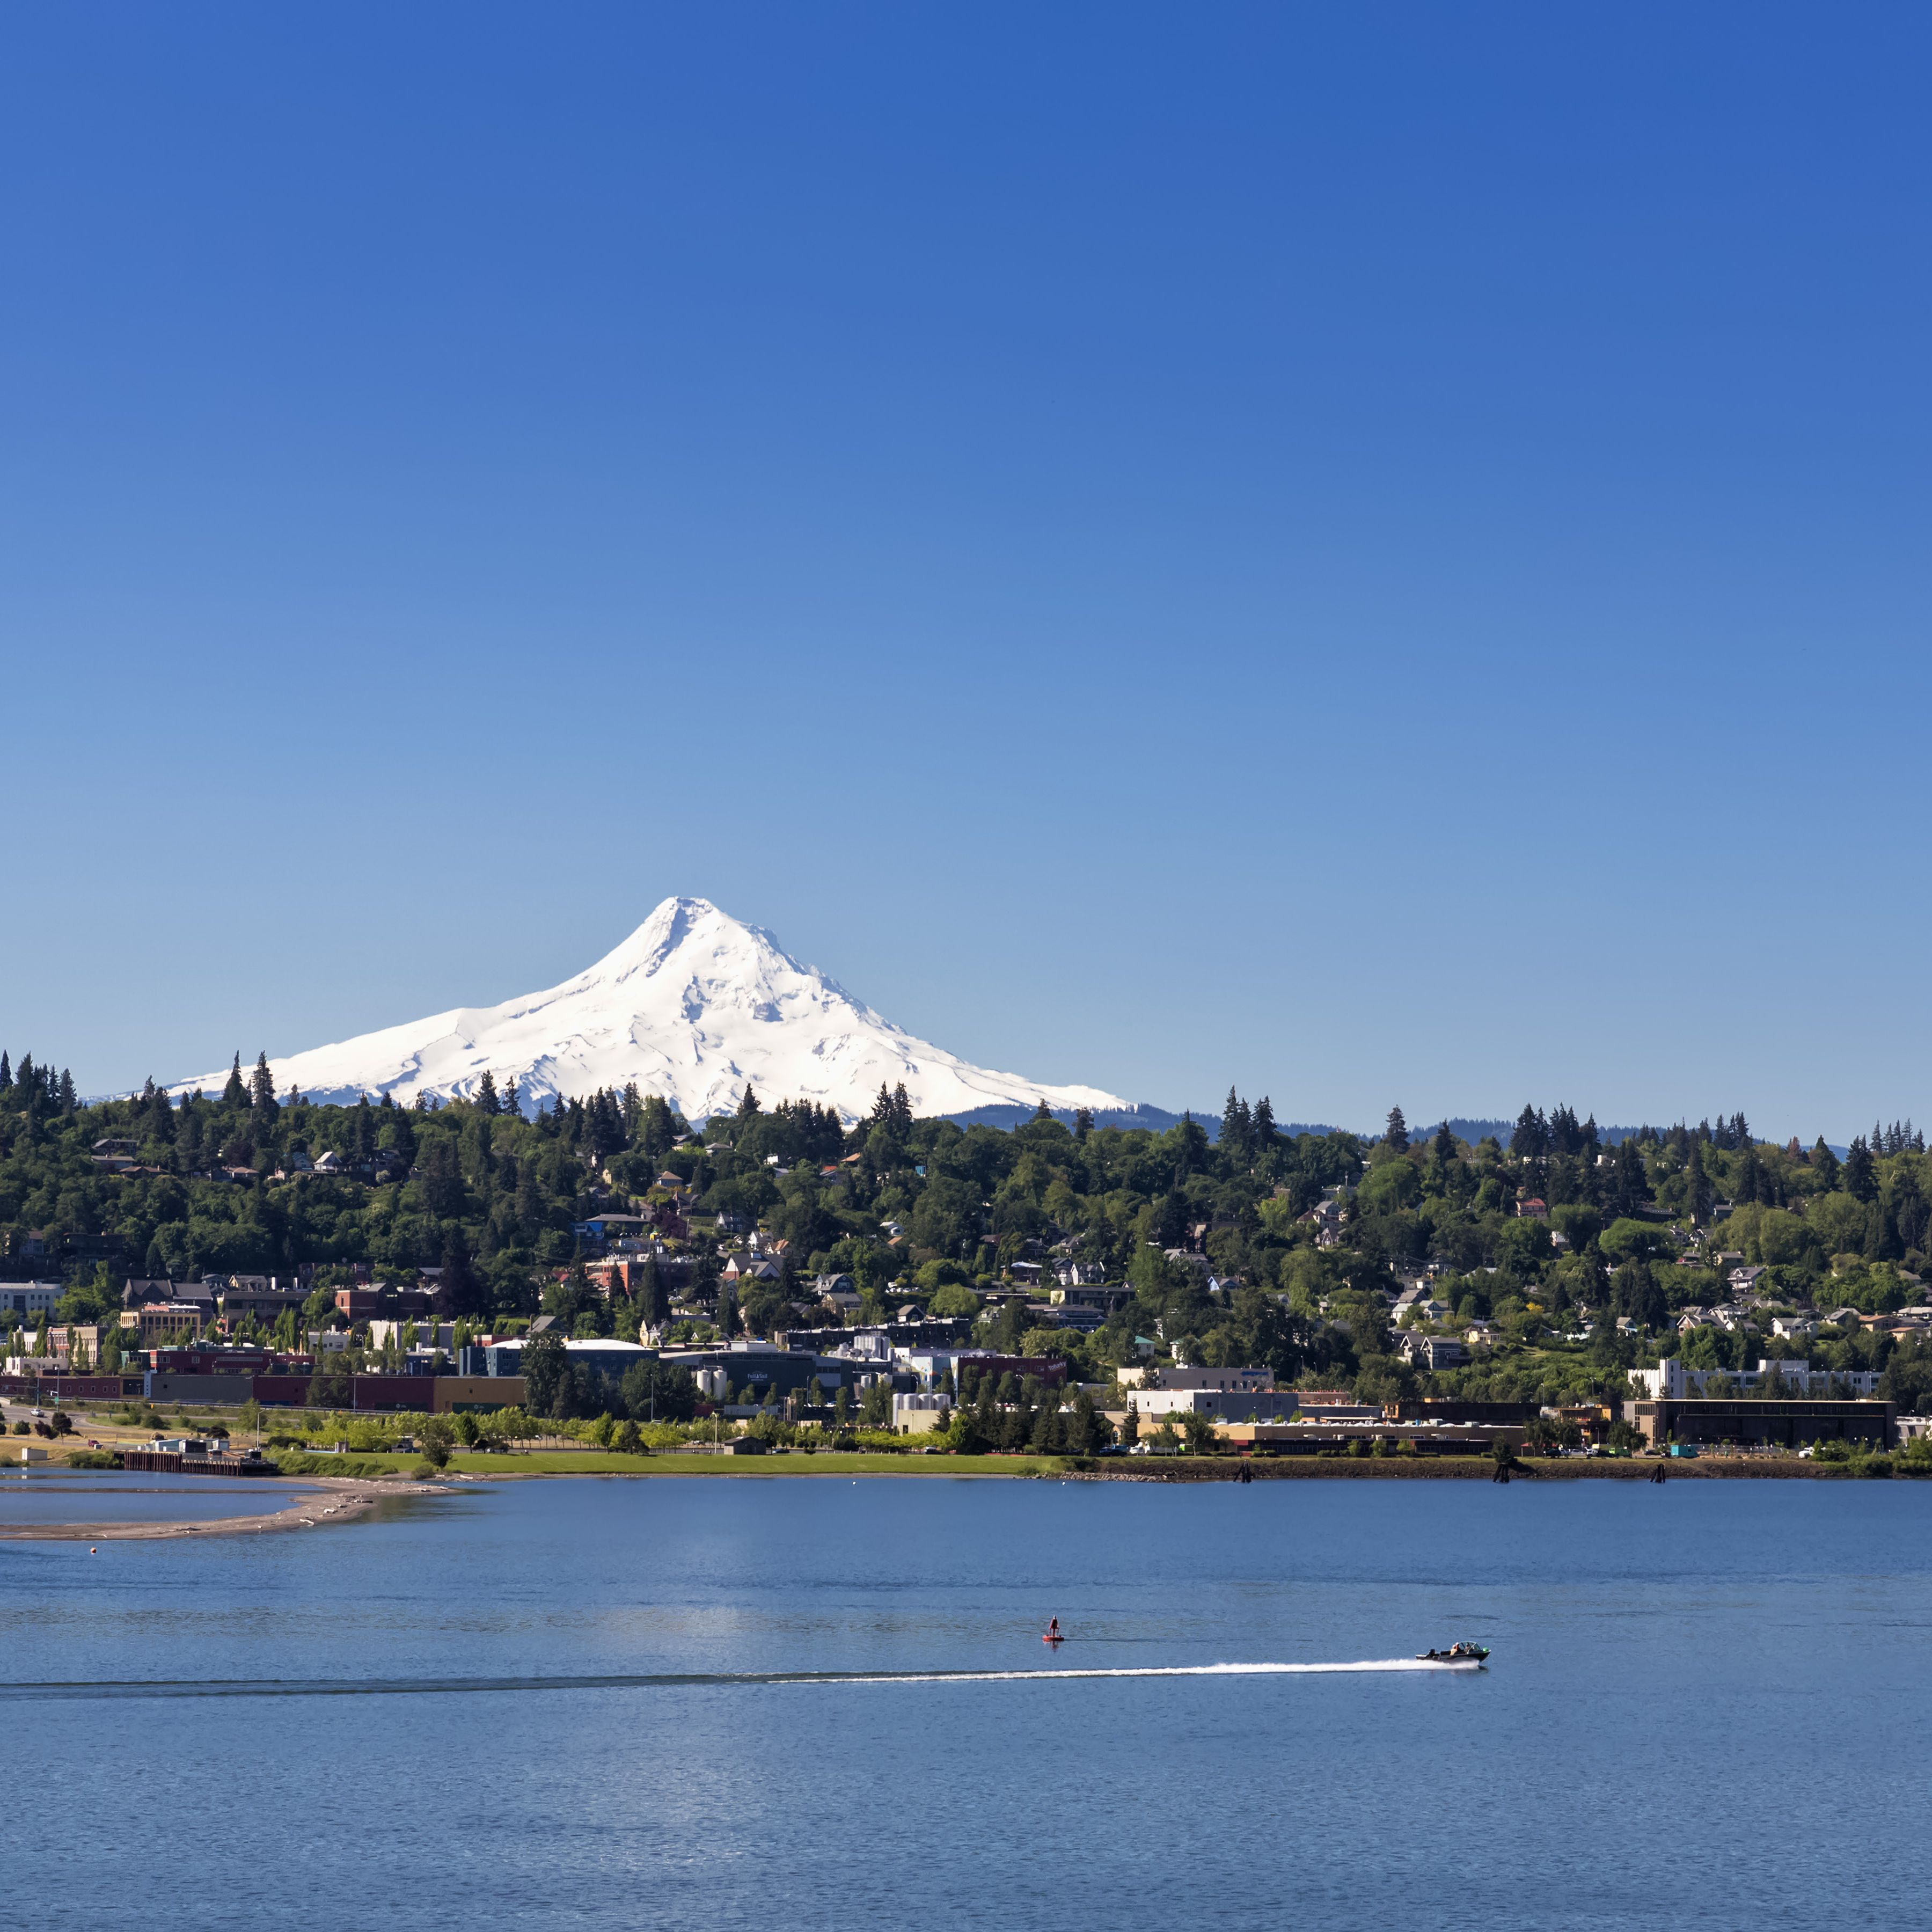 Top Things to Do in Hood River, Oregon on map of gorge amphitheatre, map of columbia basin, map of columbia county, map of white river, map of st lawrence river, tanner creek columbia river gorge, map of john day river, map of missouri river, mt. hood columbia river gorge, map of little river sc, map of ohio river, map of snake river, beacon rock columbia river gorge, map of columbia bar, map of tennessee river, map of red river new mexico, driving the columbia river gorge, map of connecticut river, map of ganges river, multnomah falls columbia river gorge,